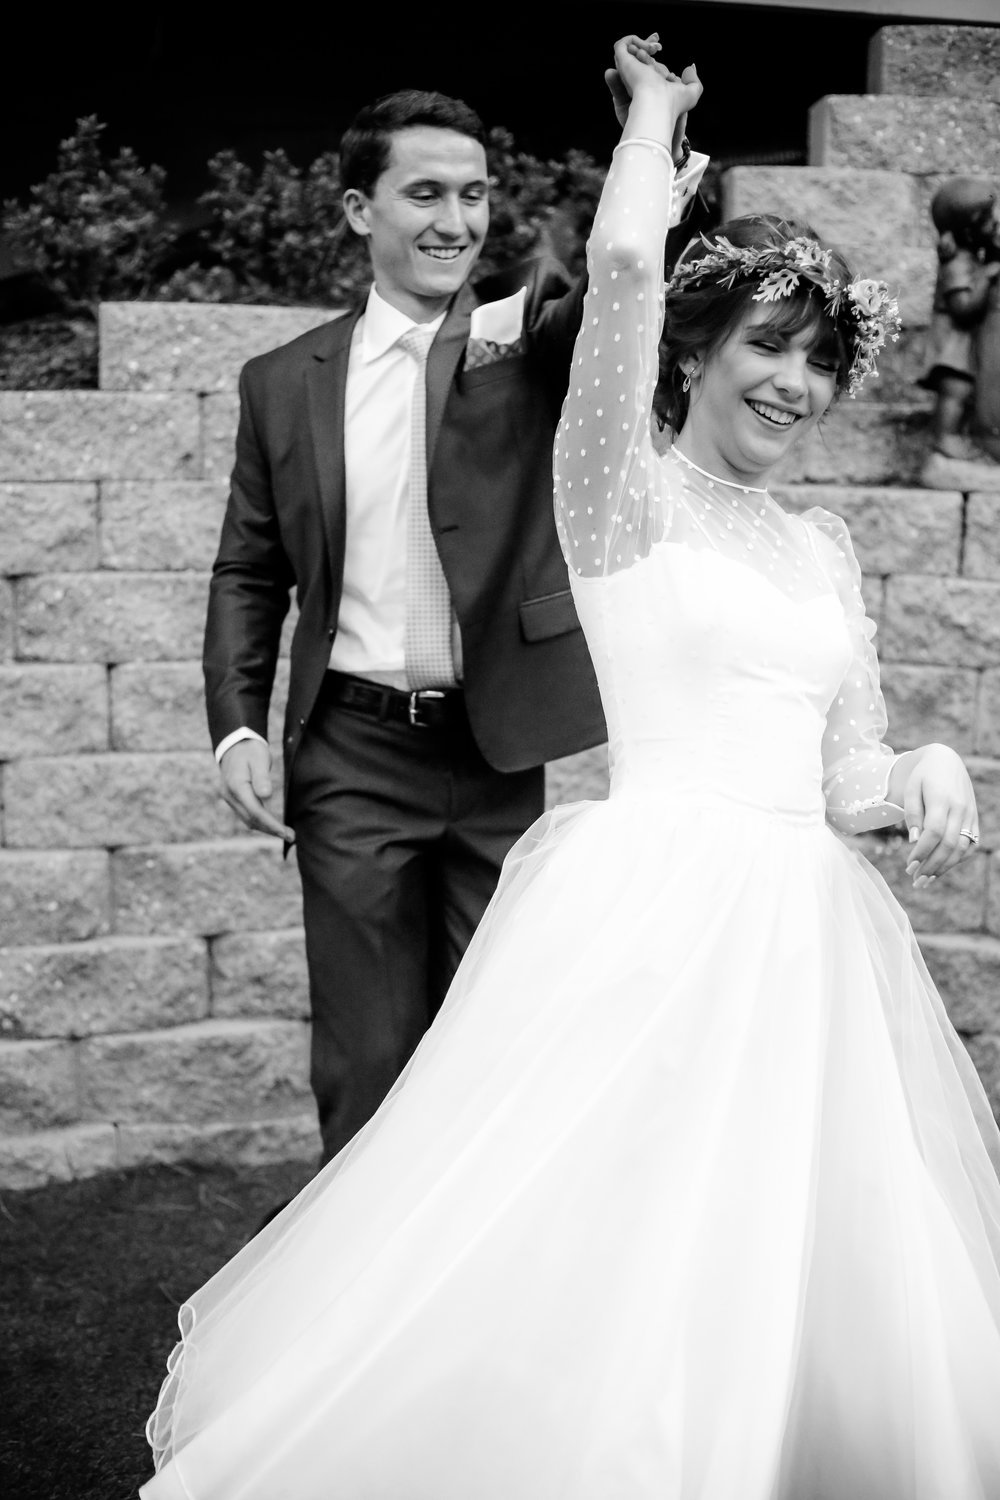 alexandra-rice-photography-monterey-wedding-bride-groom-first-dance-twirling.jpg